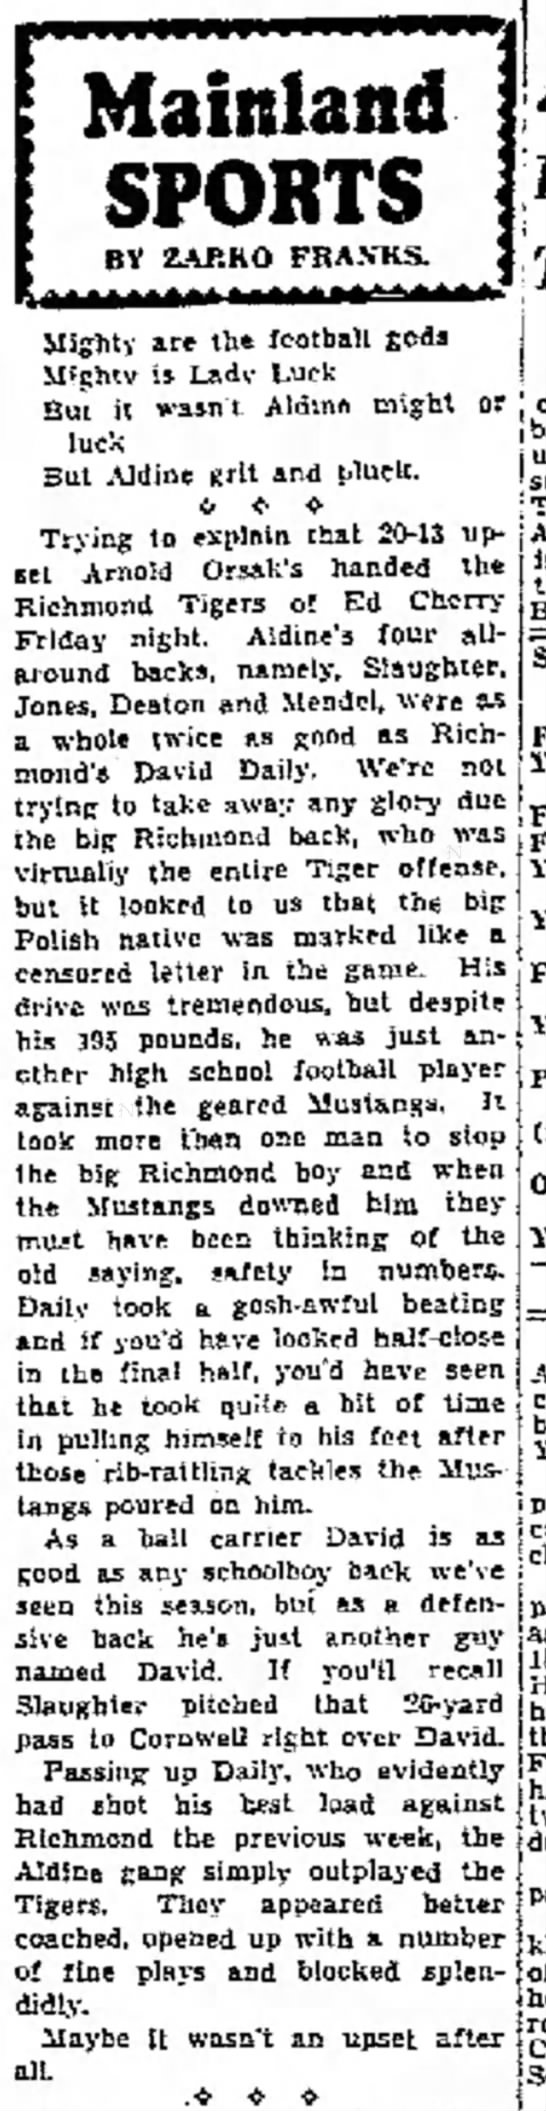 Galveston Daily News 7Dec1941 Richmond Tigers - Mainland SPORTS BY ZAP.KO FRA.VKS. Migbtr are...